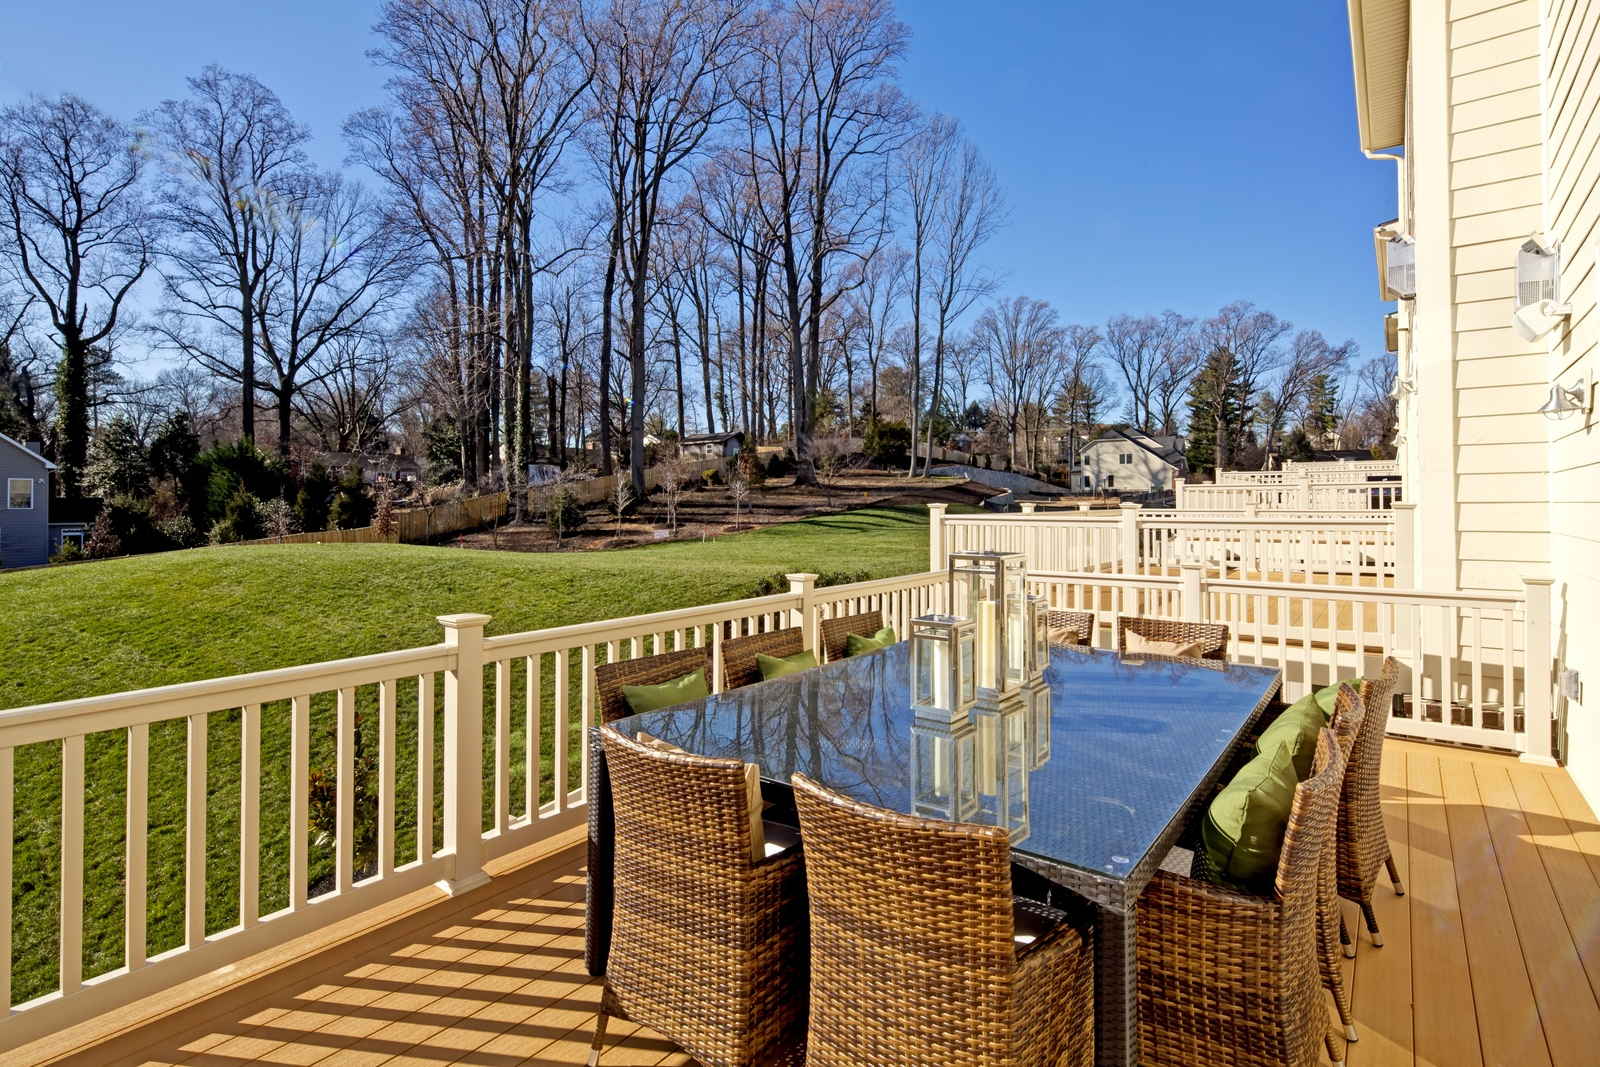 Visit today and learn about our Andrew Carnegie home with a deck overlooking open space.